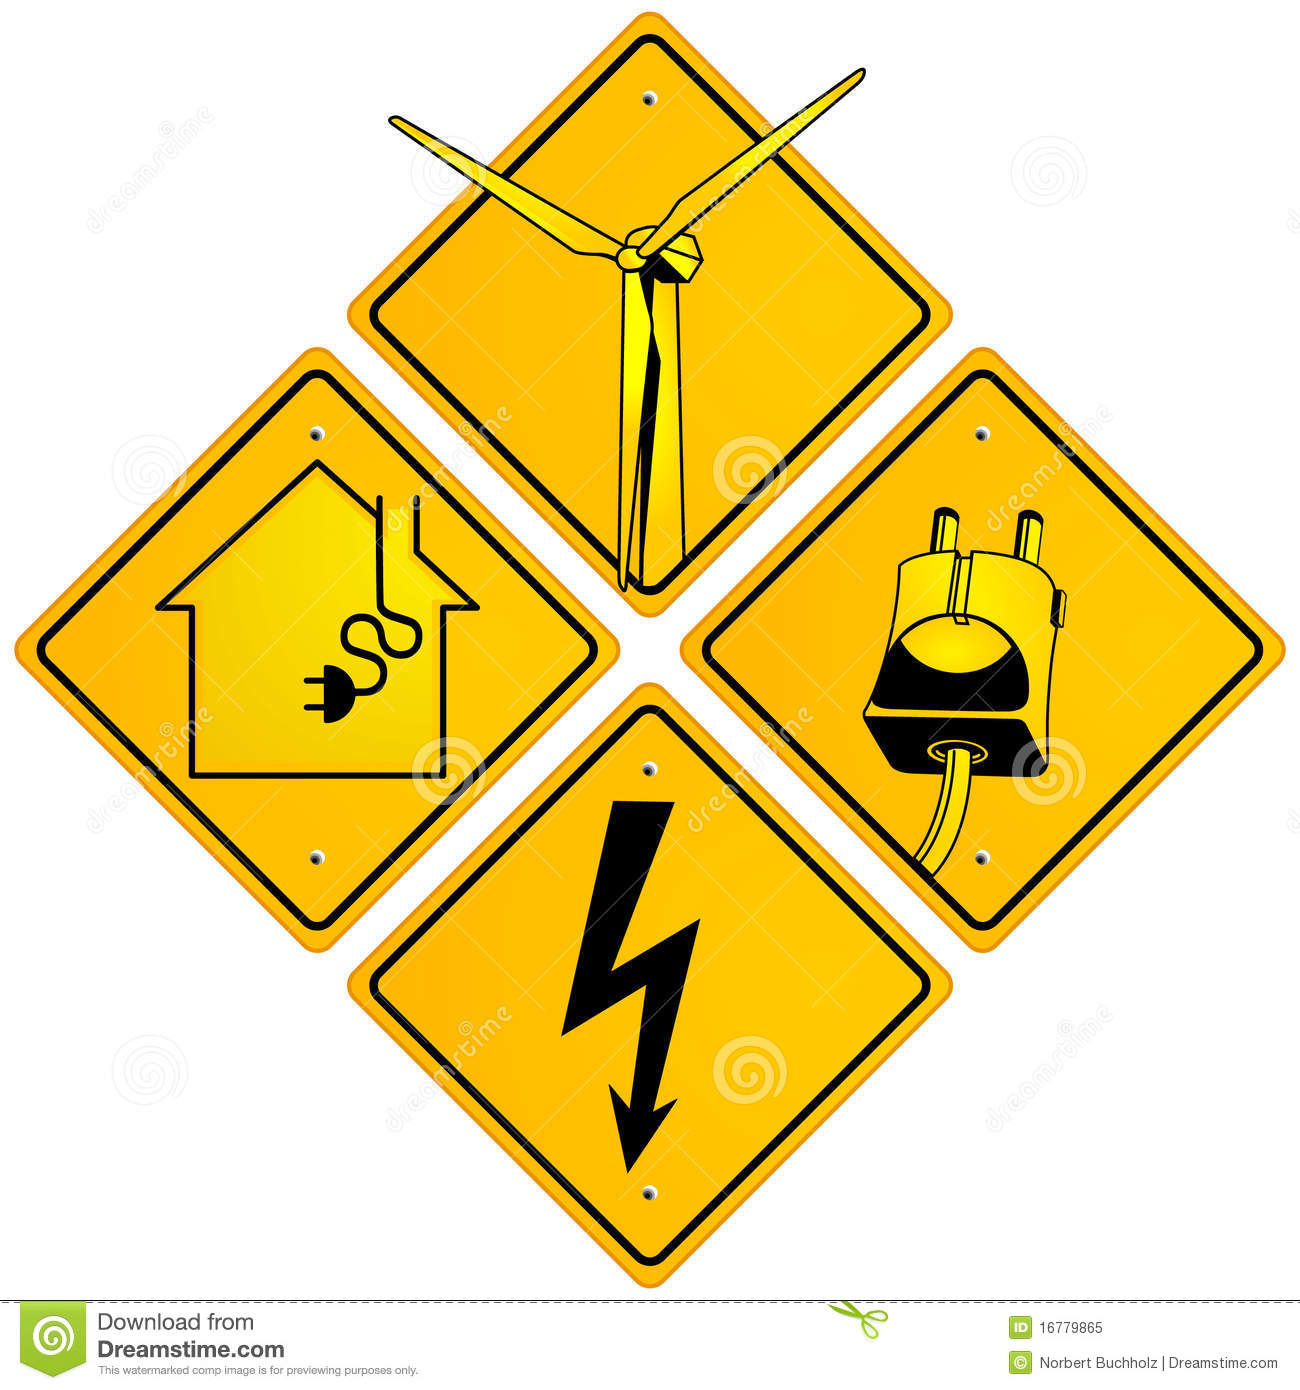 Electrical Sign Royalty Free Stock Photo - Image: 16779865